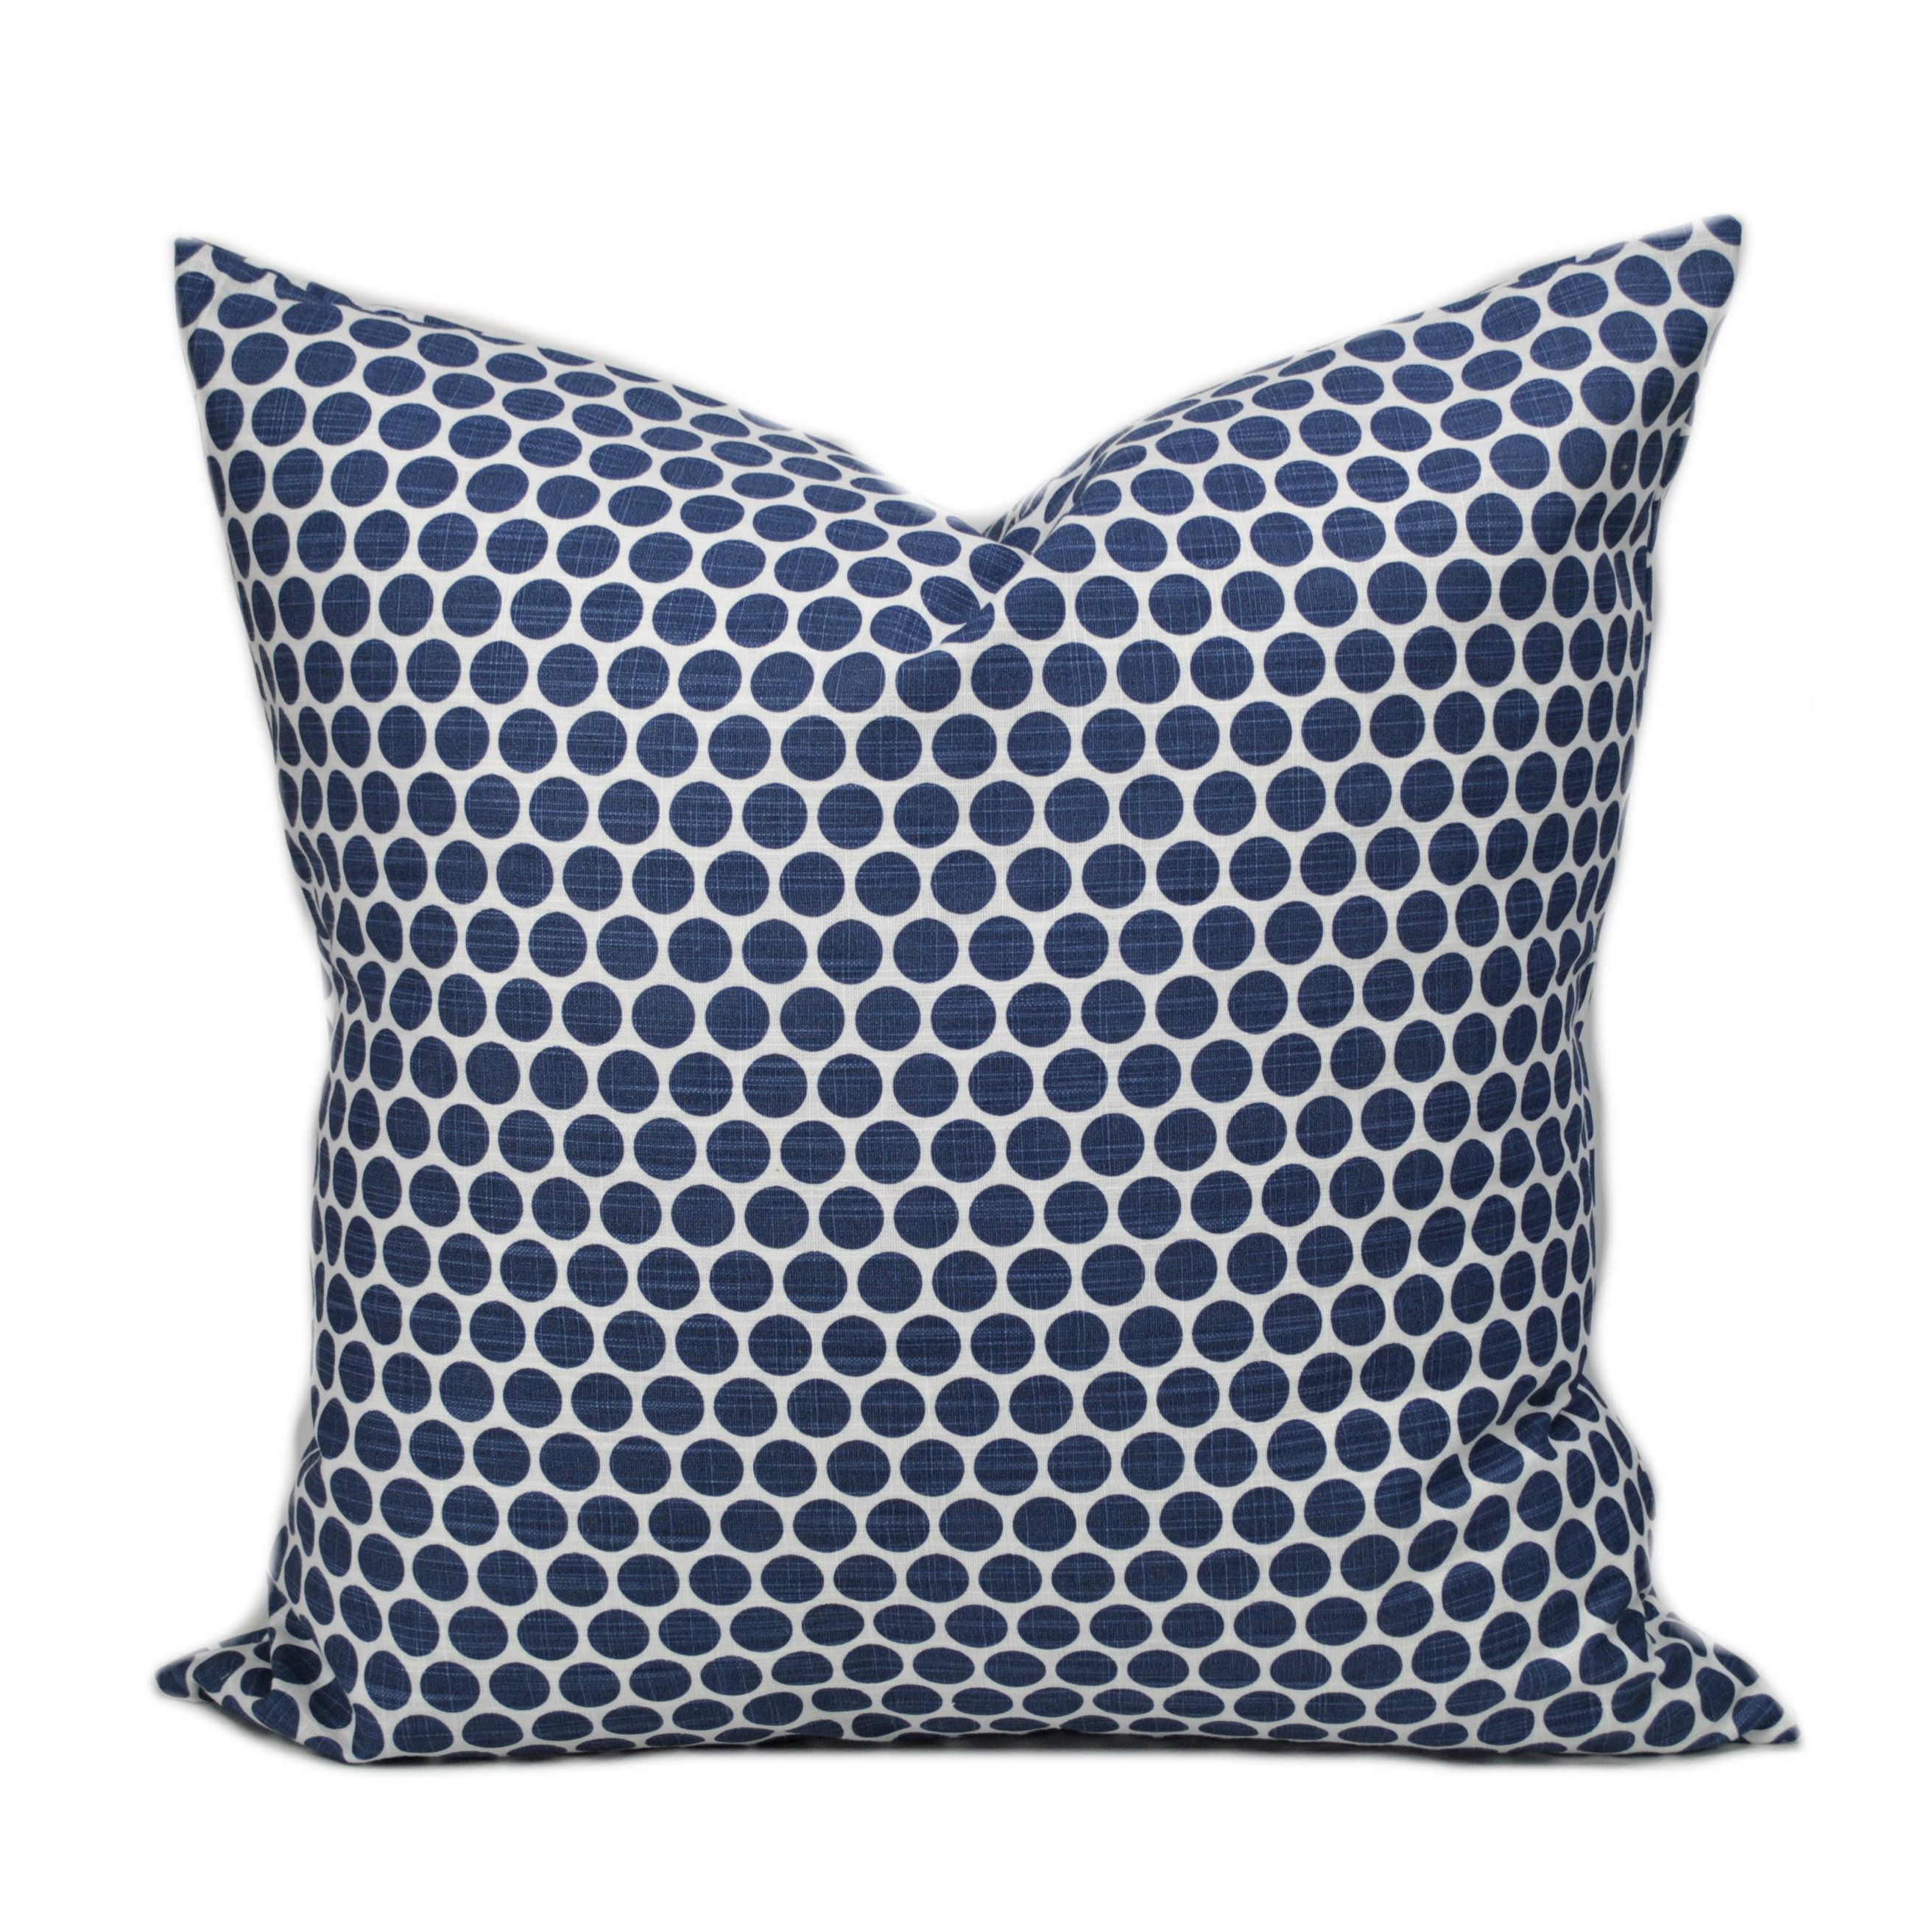 One Polka Dot Pillow Cover, Cushion, Decorative Throw Pillow, Navy